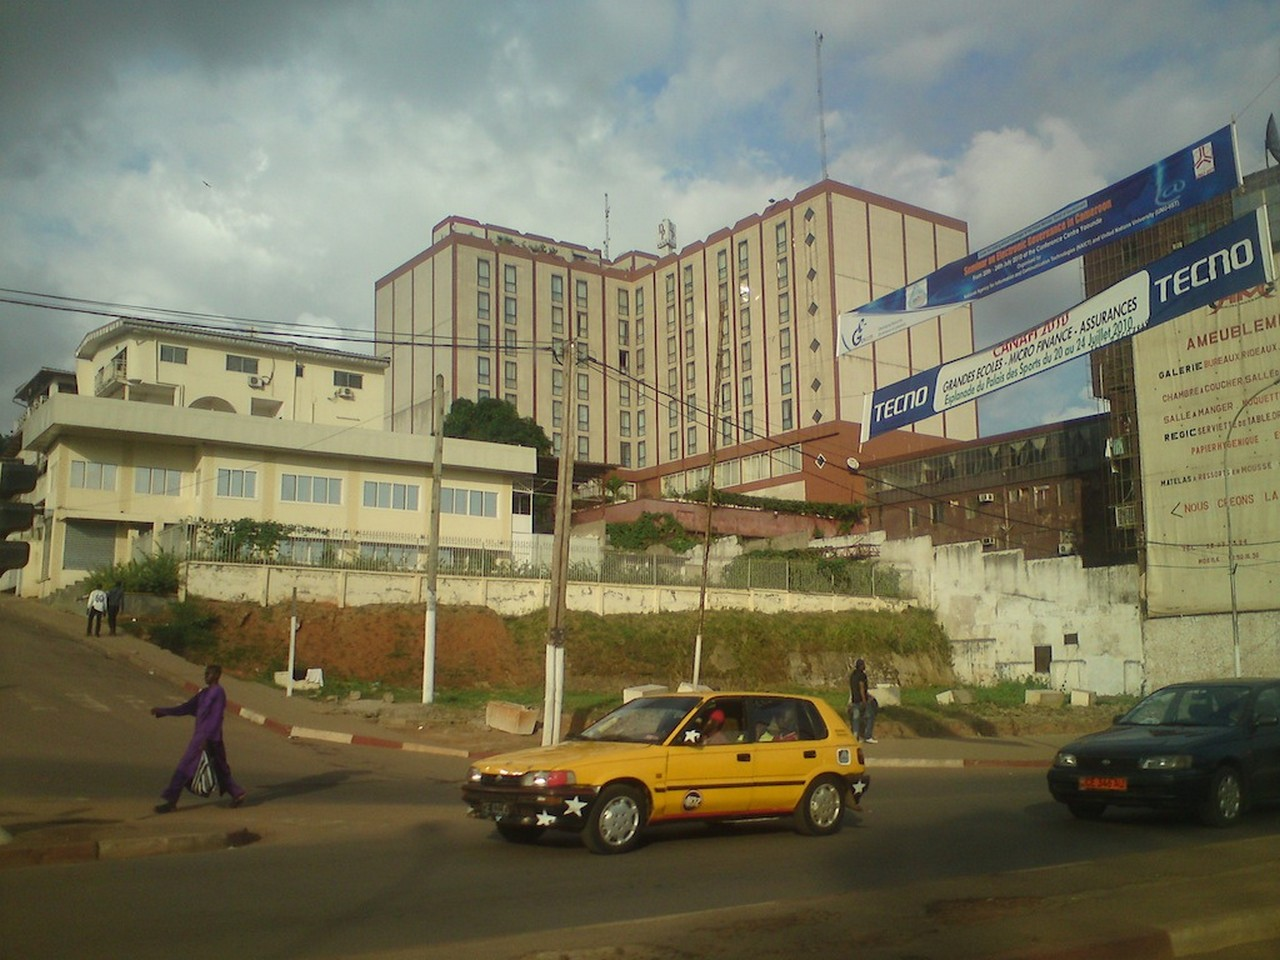 Cameroon city center